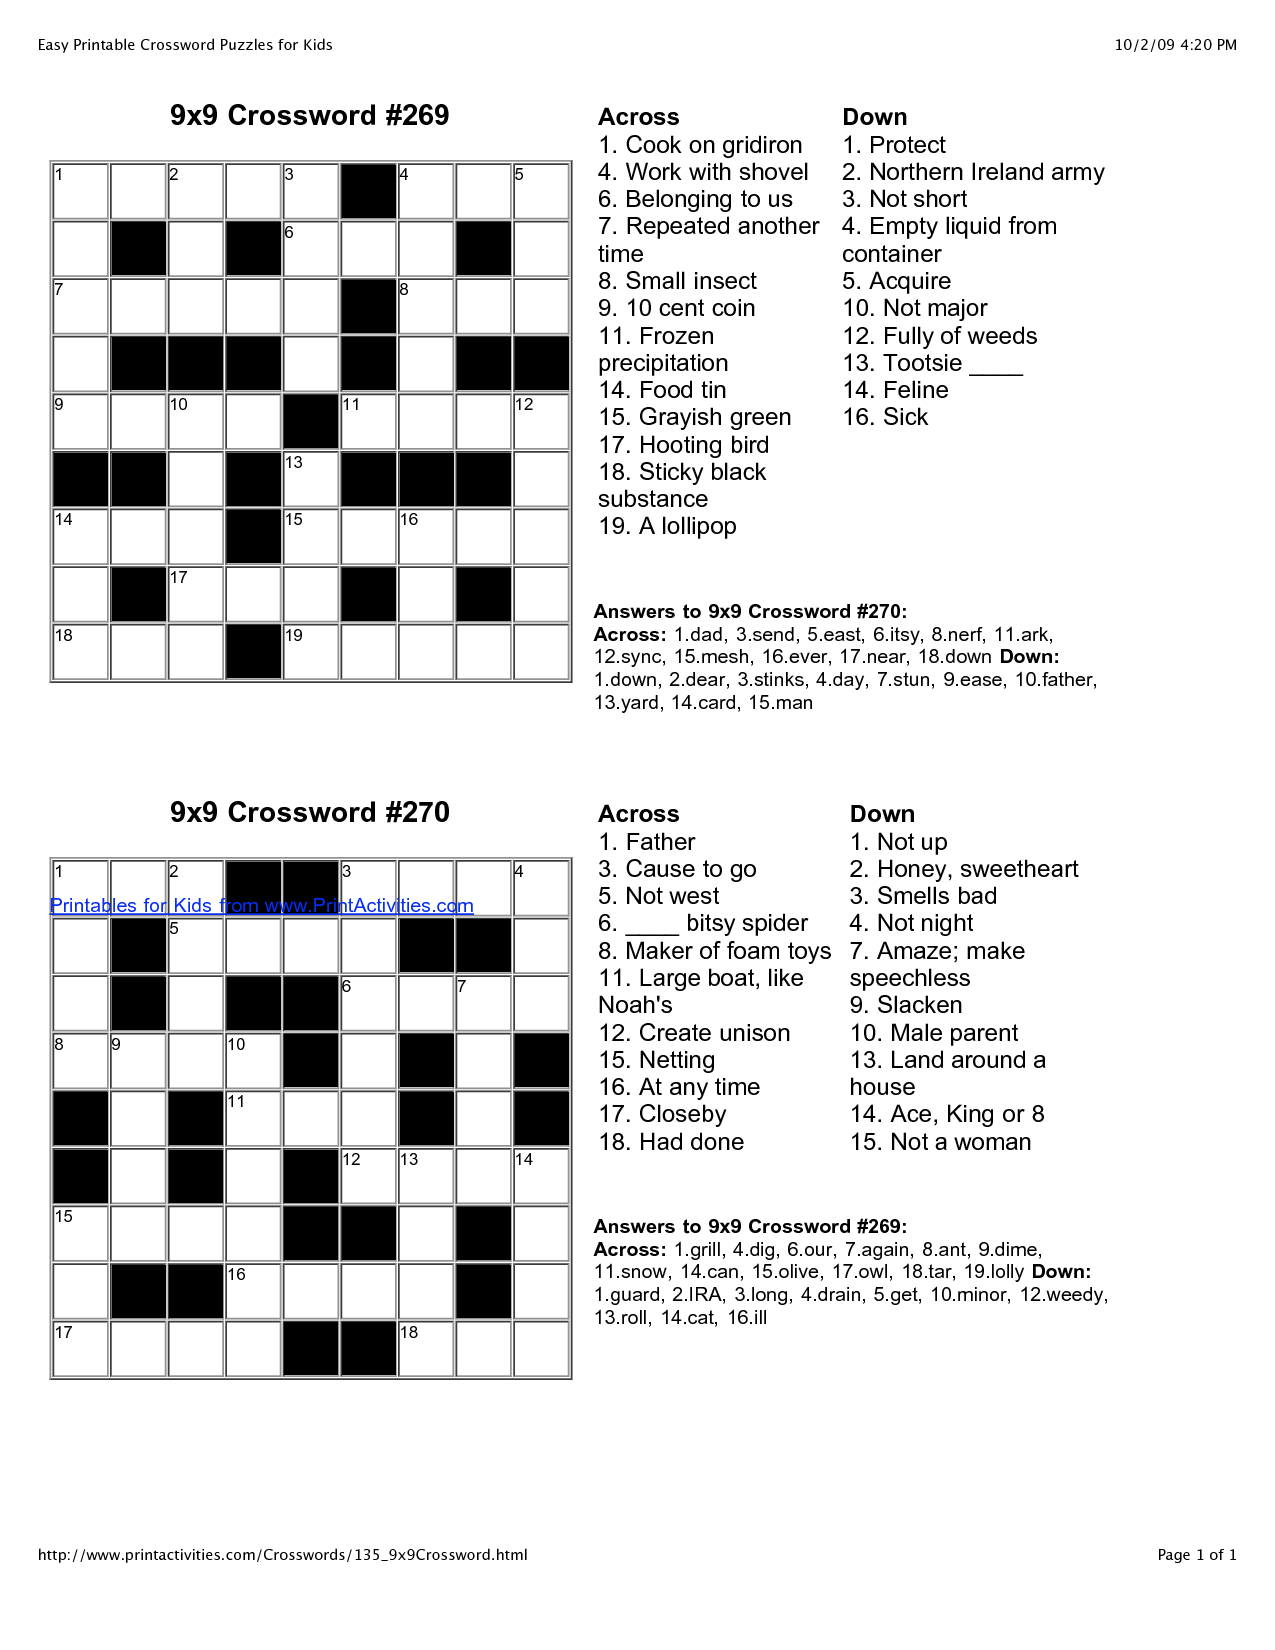 Easy Crossword Puzzles | I'm Going To Be An Slp! | Kids Crossword - Printable Puzzles For 11 Year Olds